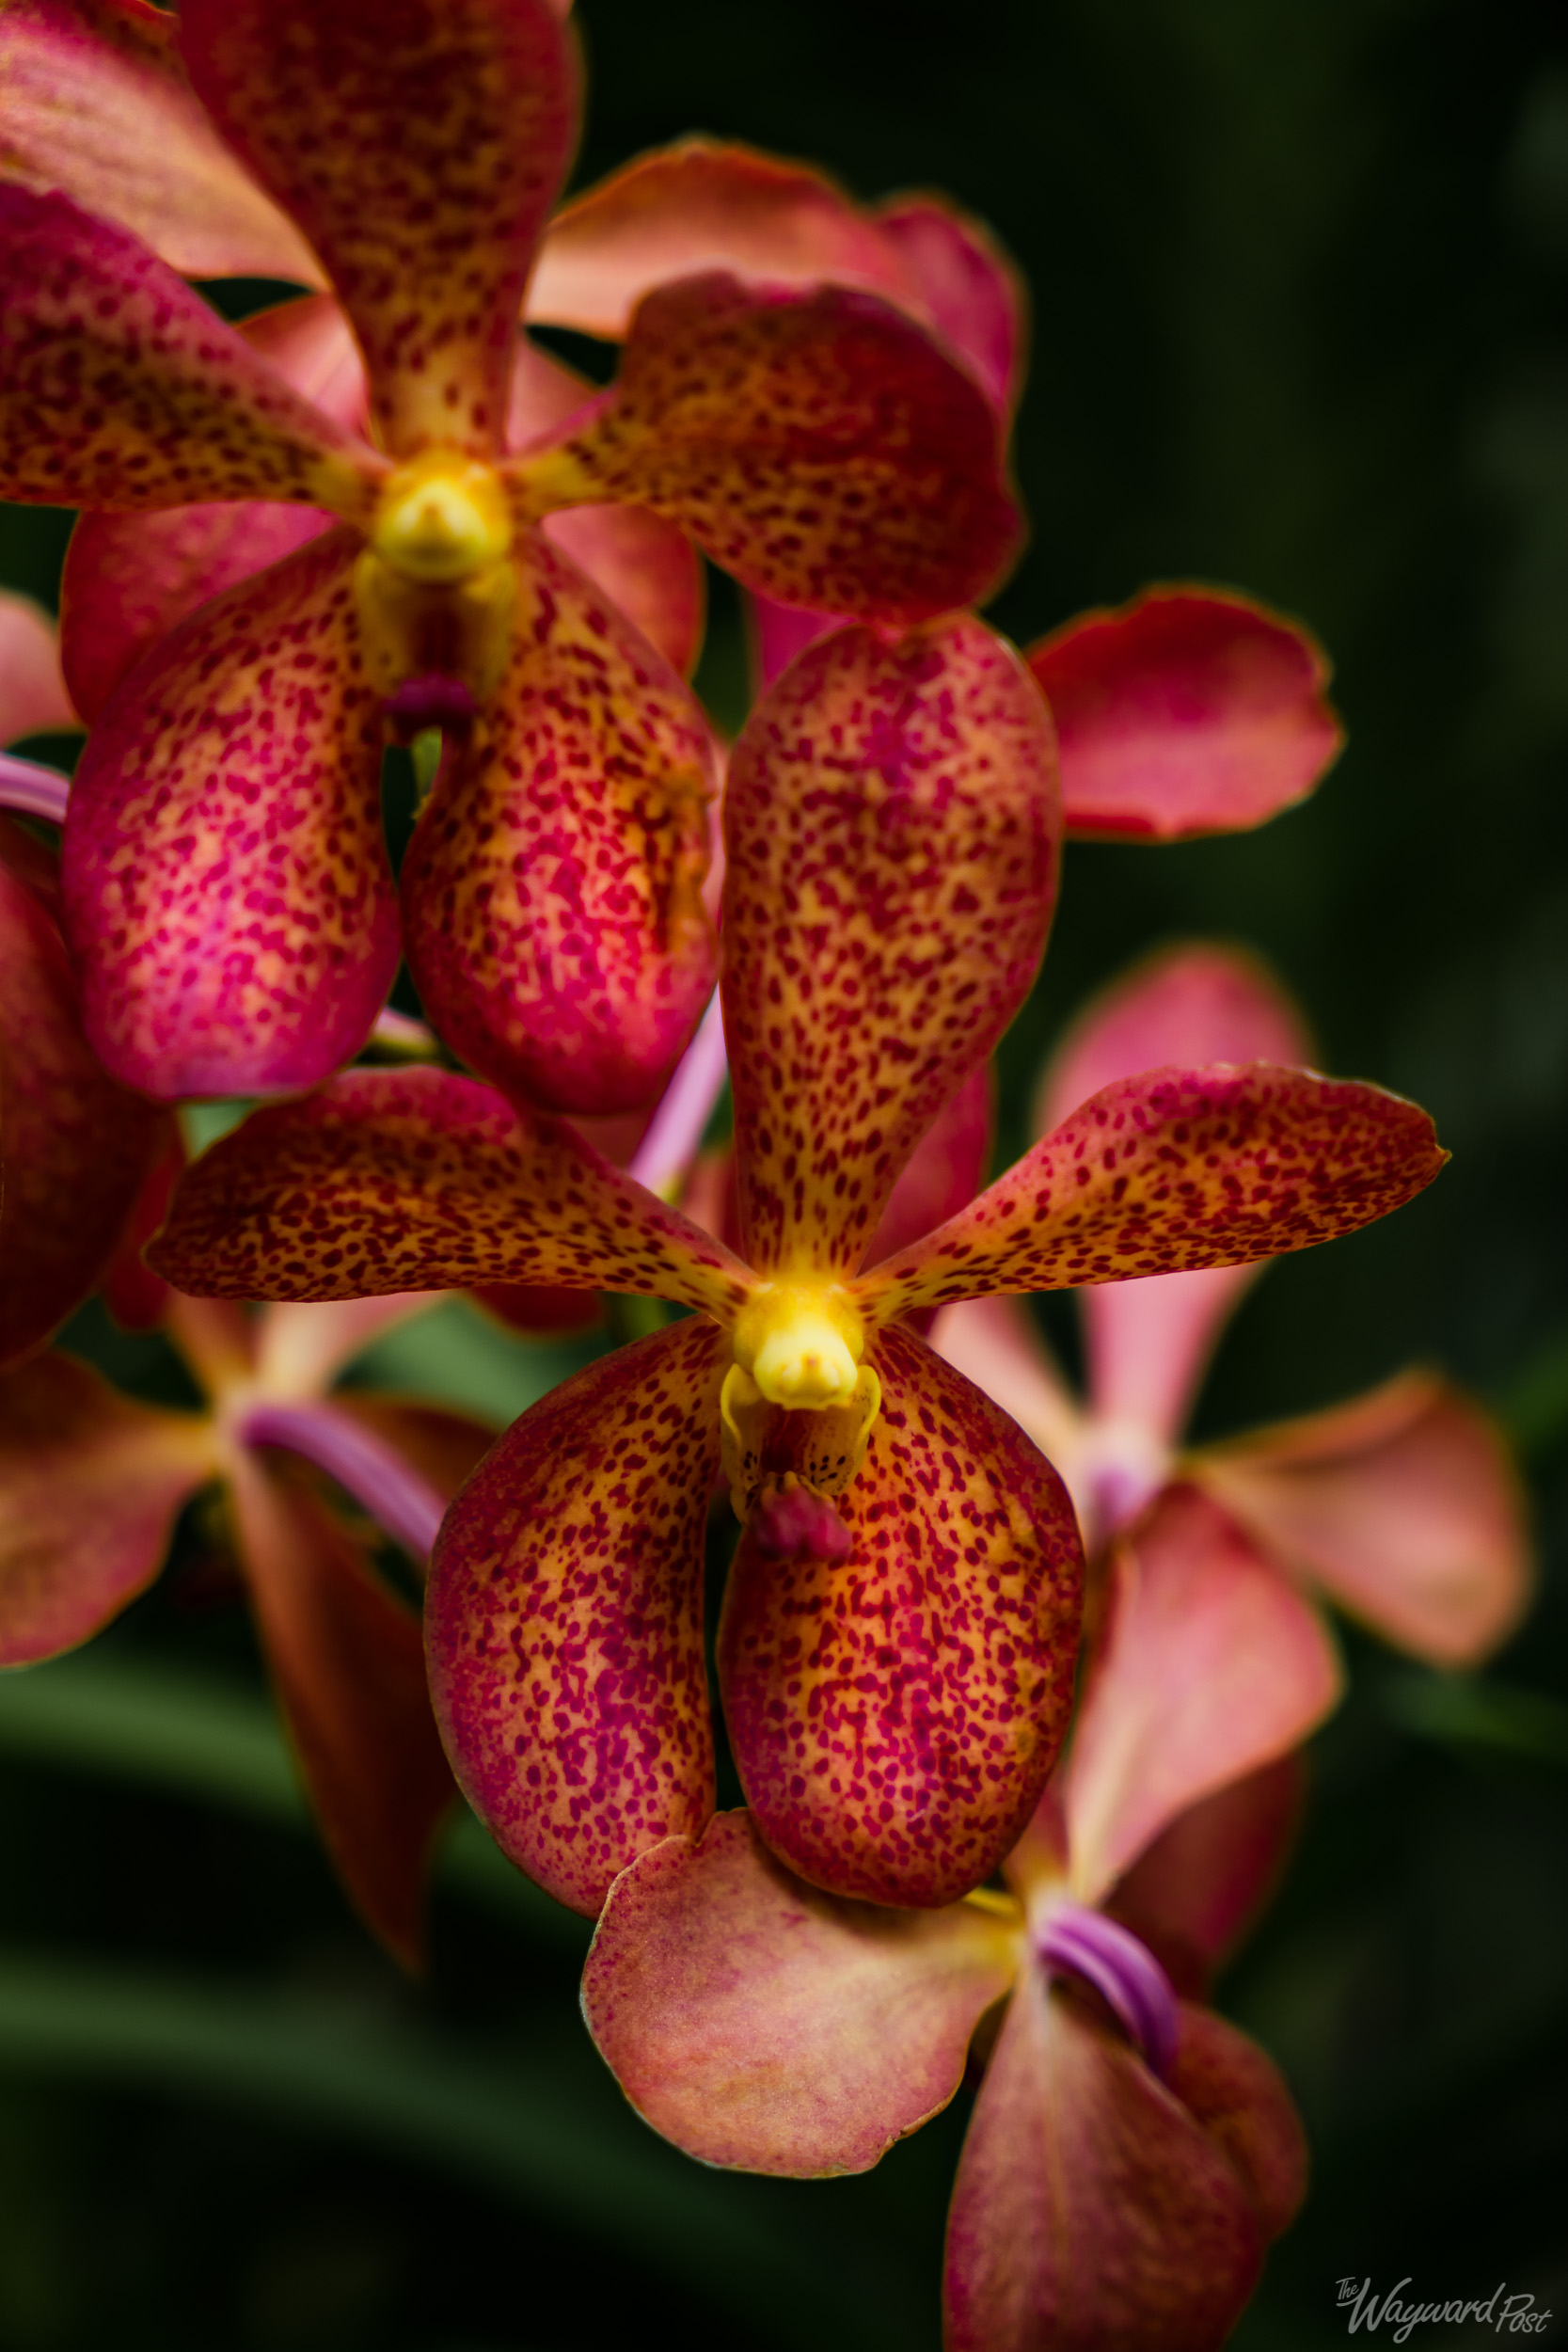 The Wayward Post - Photo Story - Singapore and Orchids-5.jpg